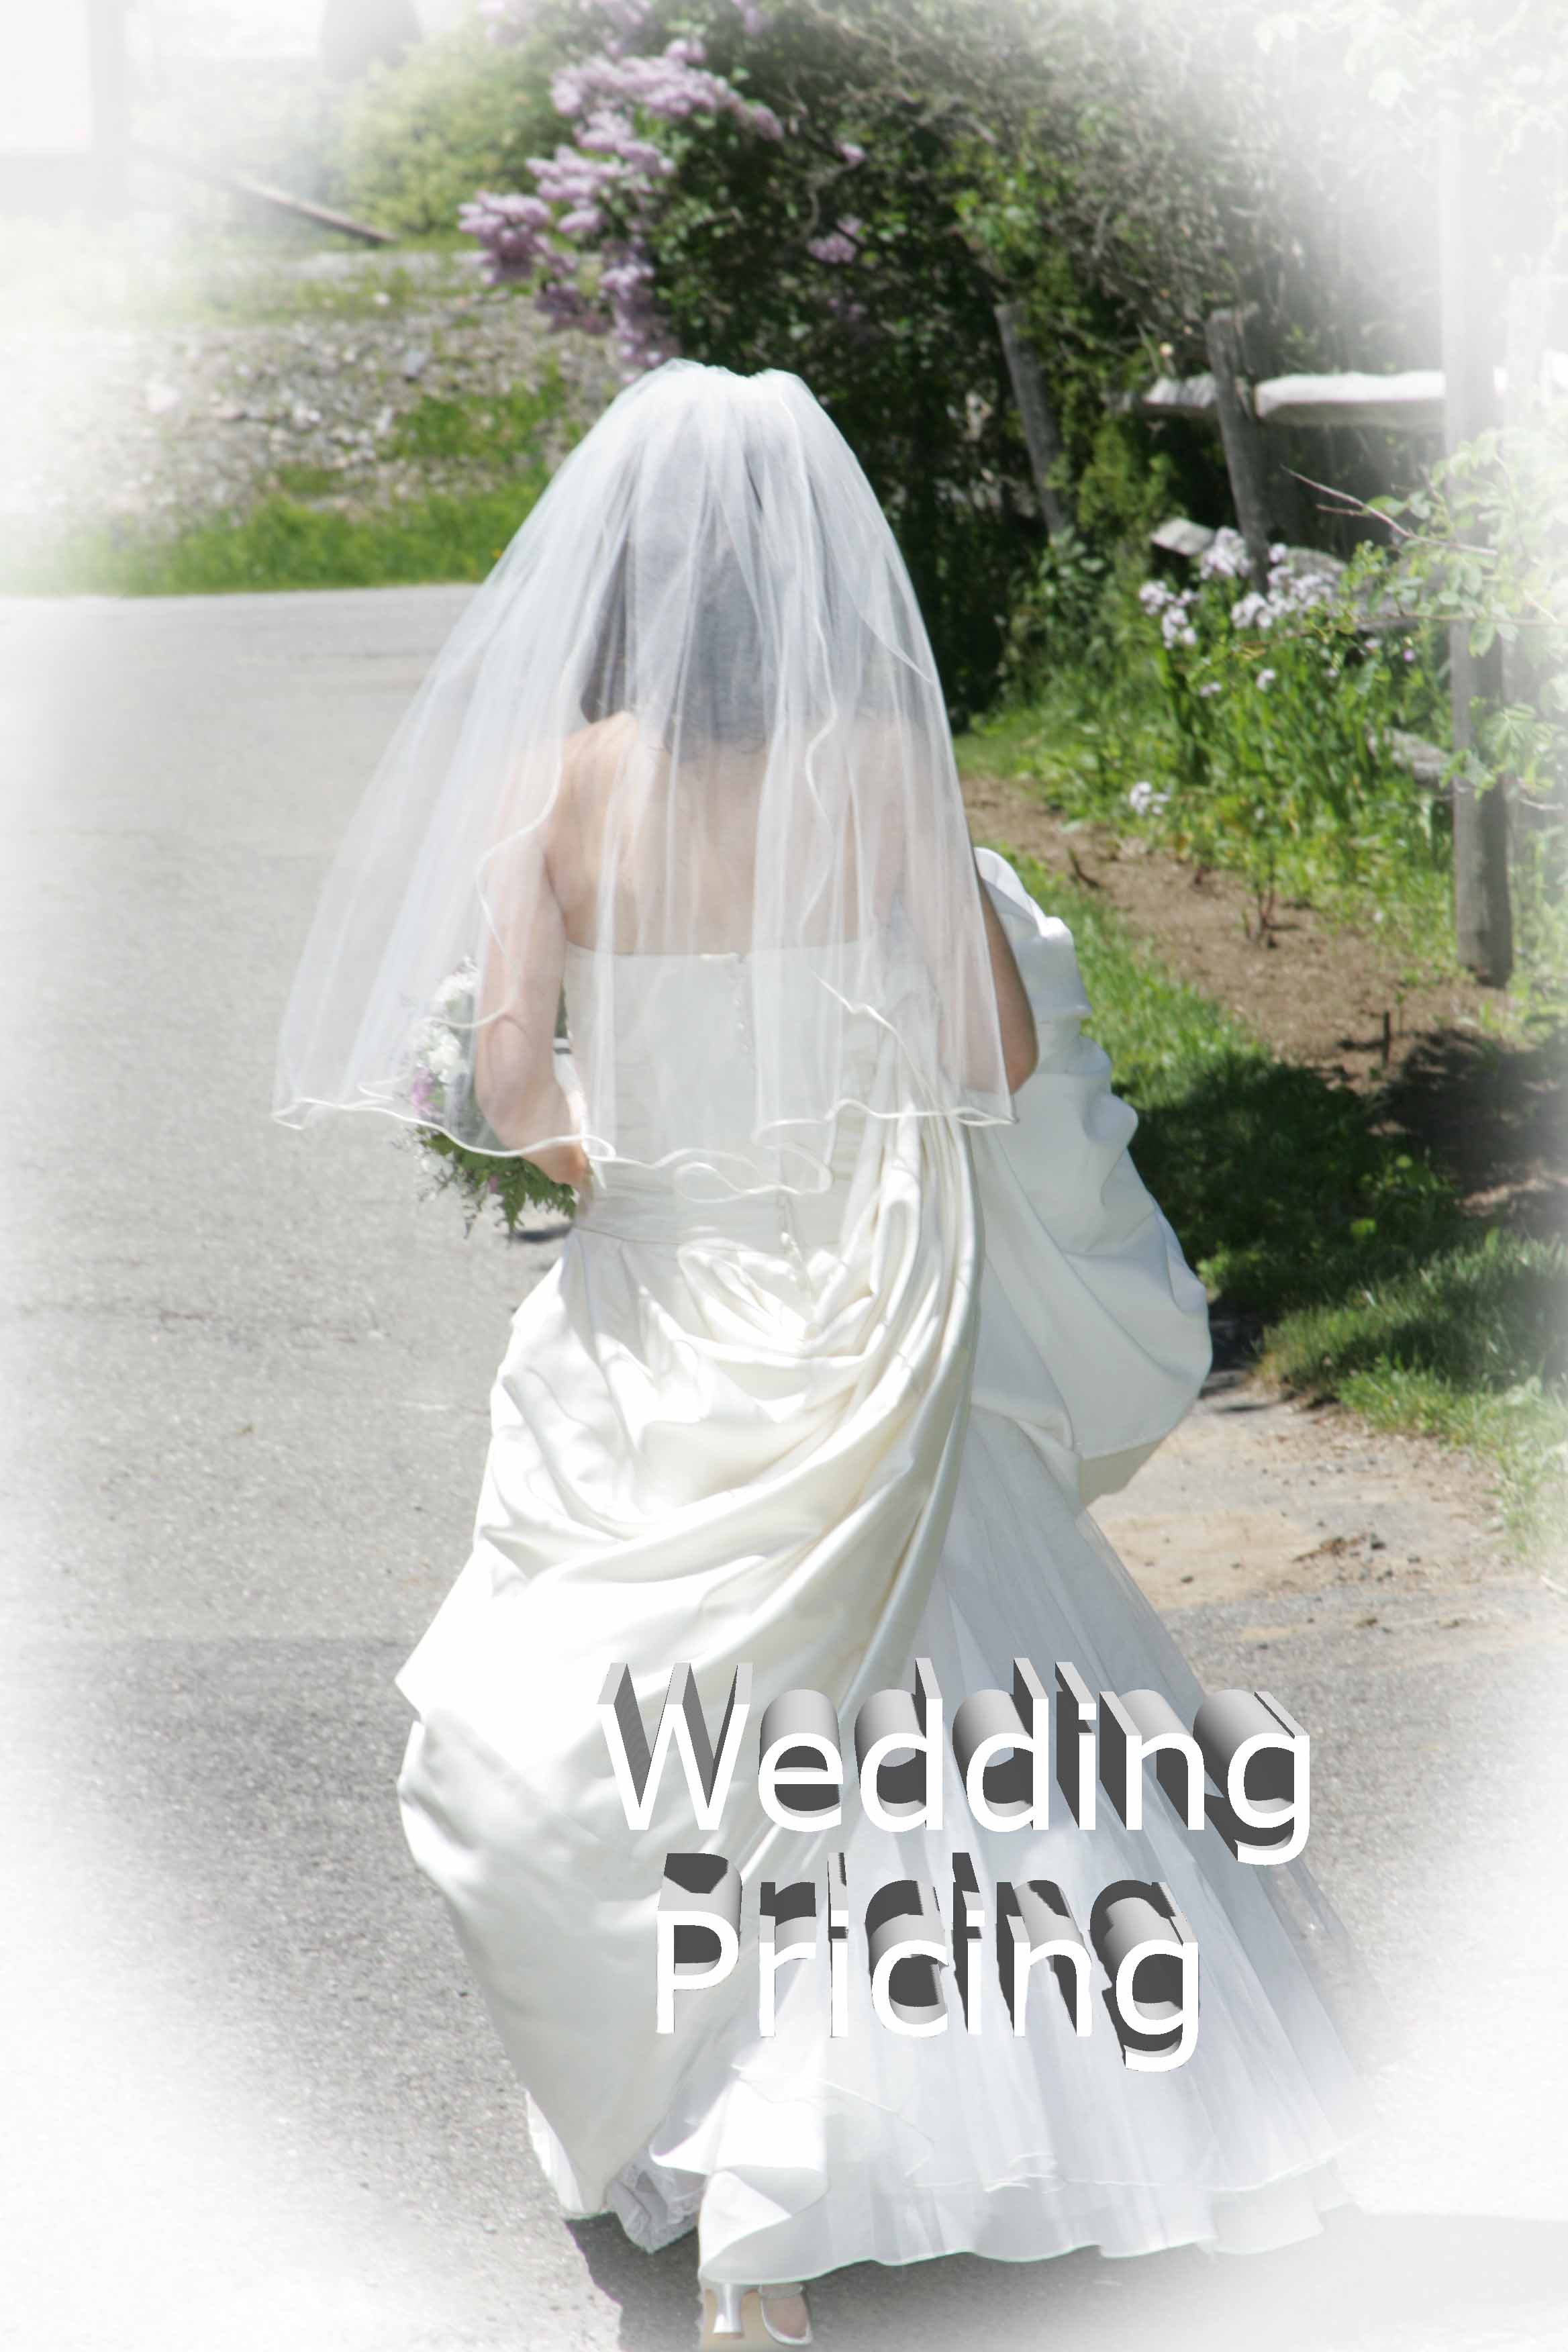 wedwedding